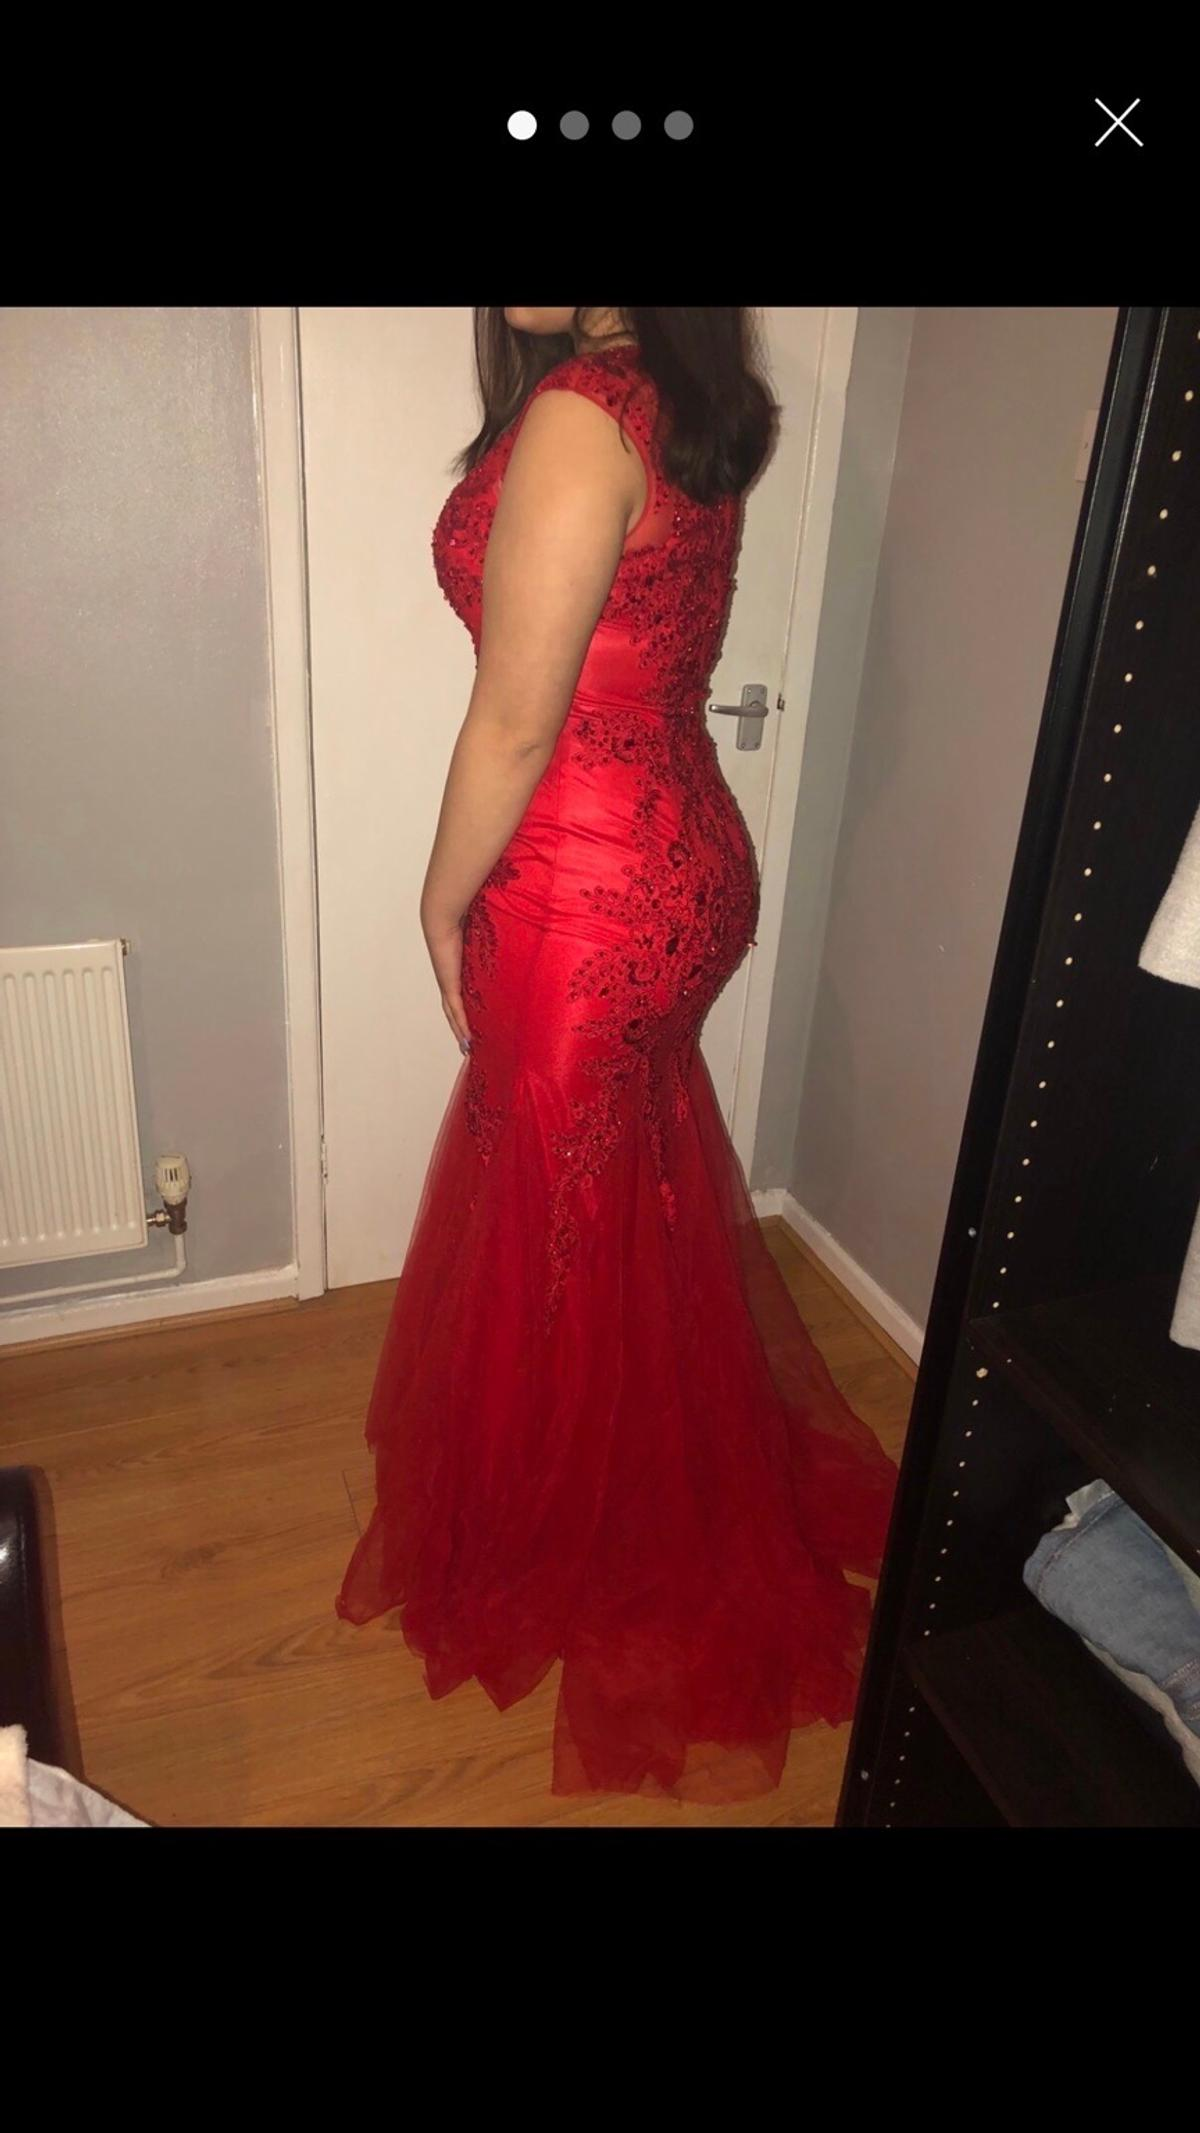 beautiful, high end, sequinned, red fishtail prom dress RRP £550 bought from sonique in birmingham size 12-14 worn once for a few hours open to reasonable offers